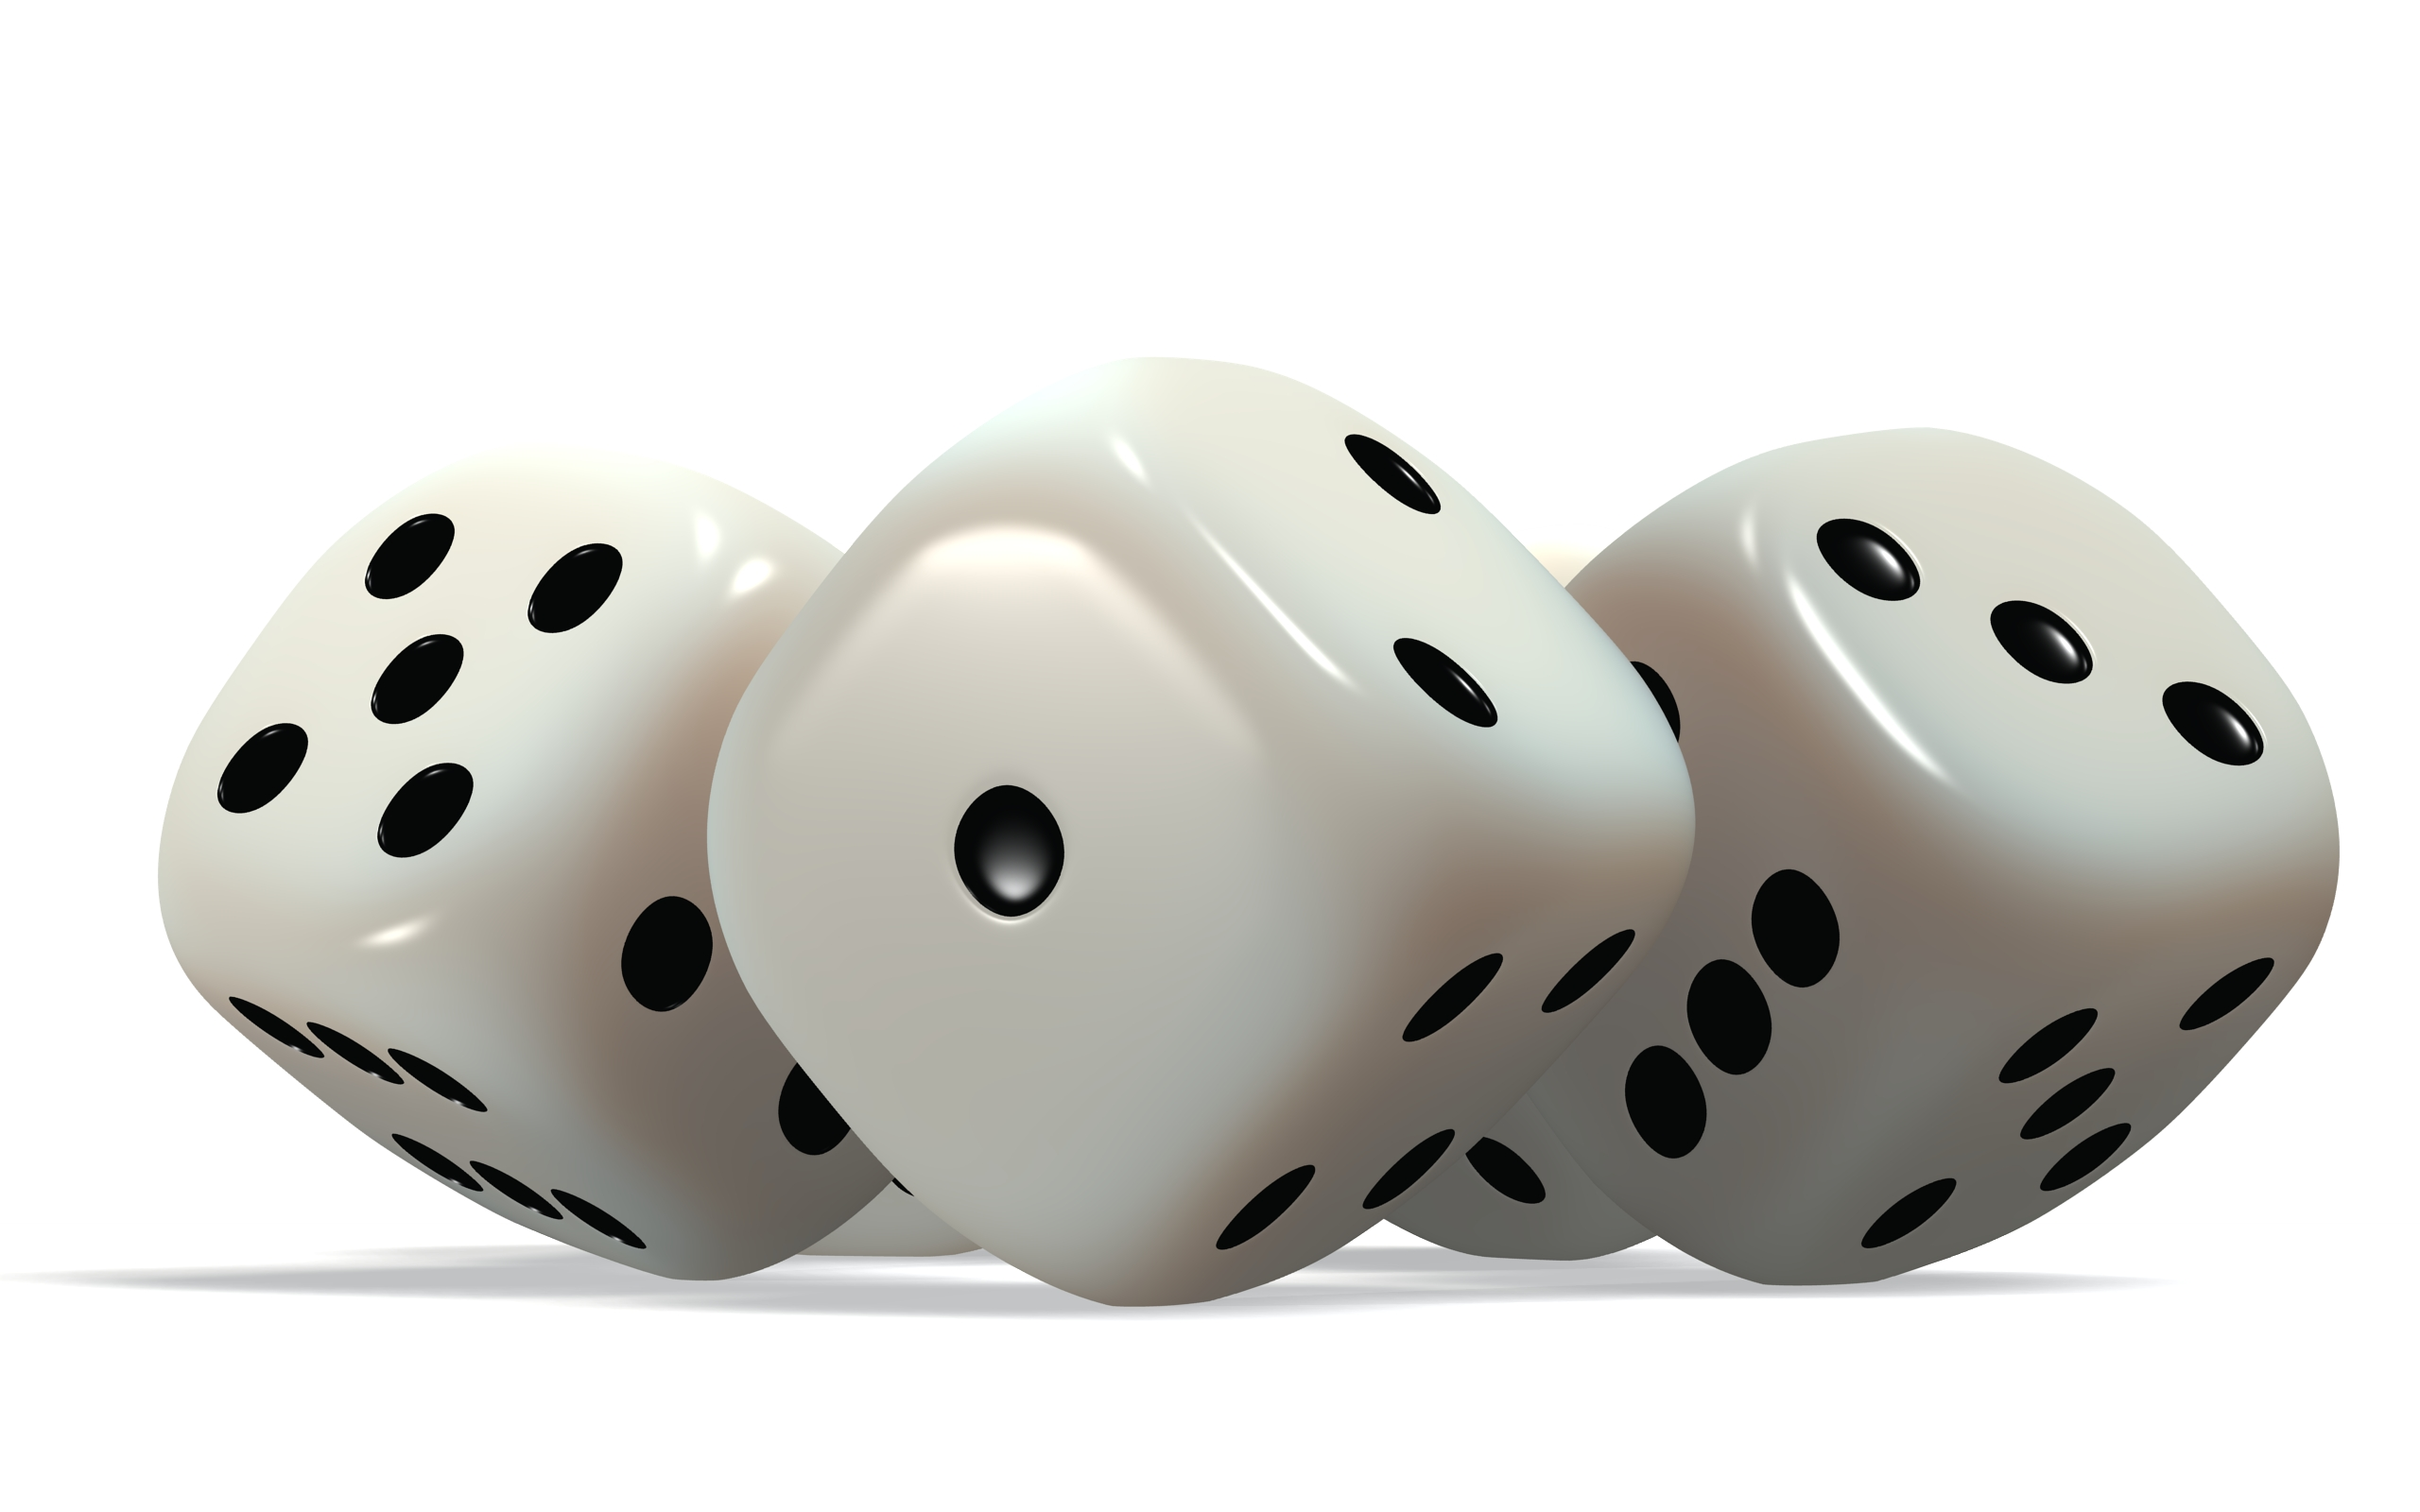 1134318_13908364 - Dice HD PNG